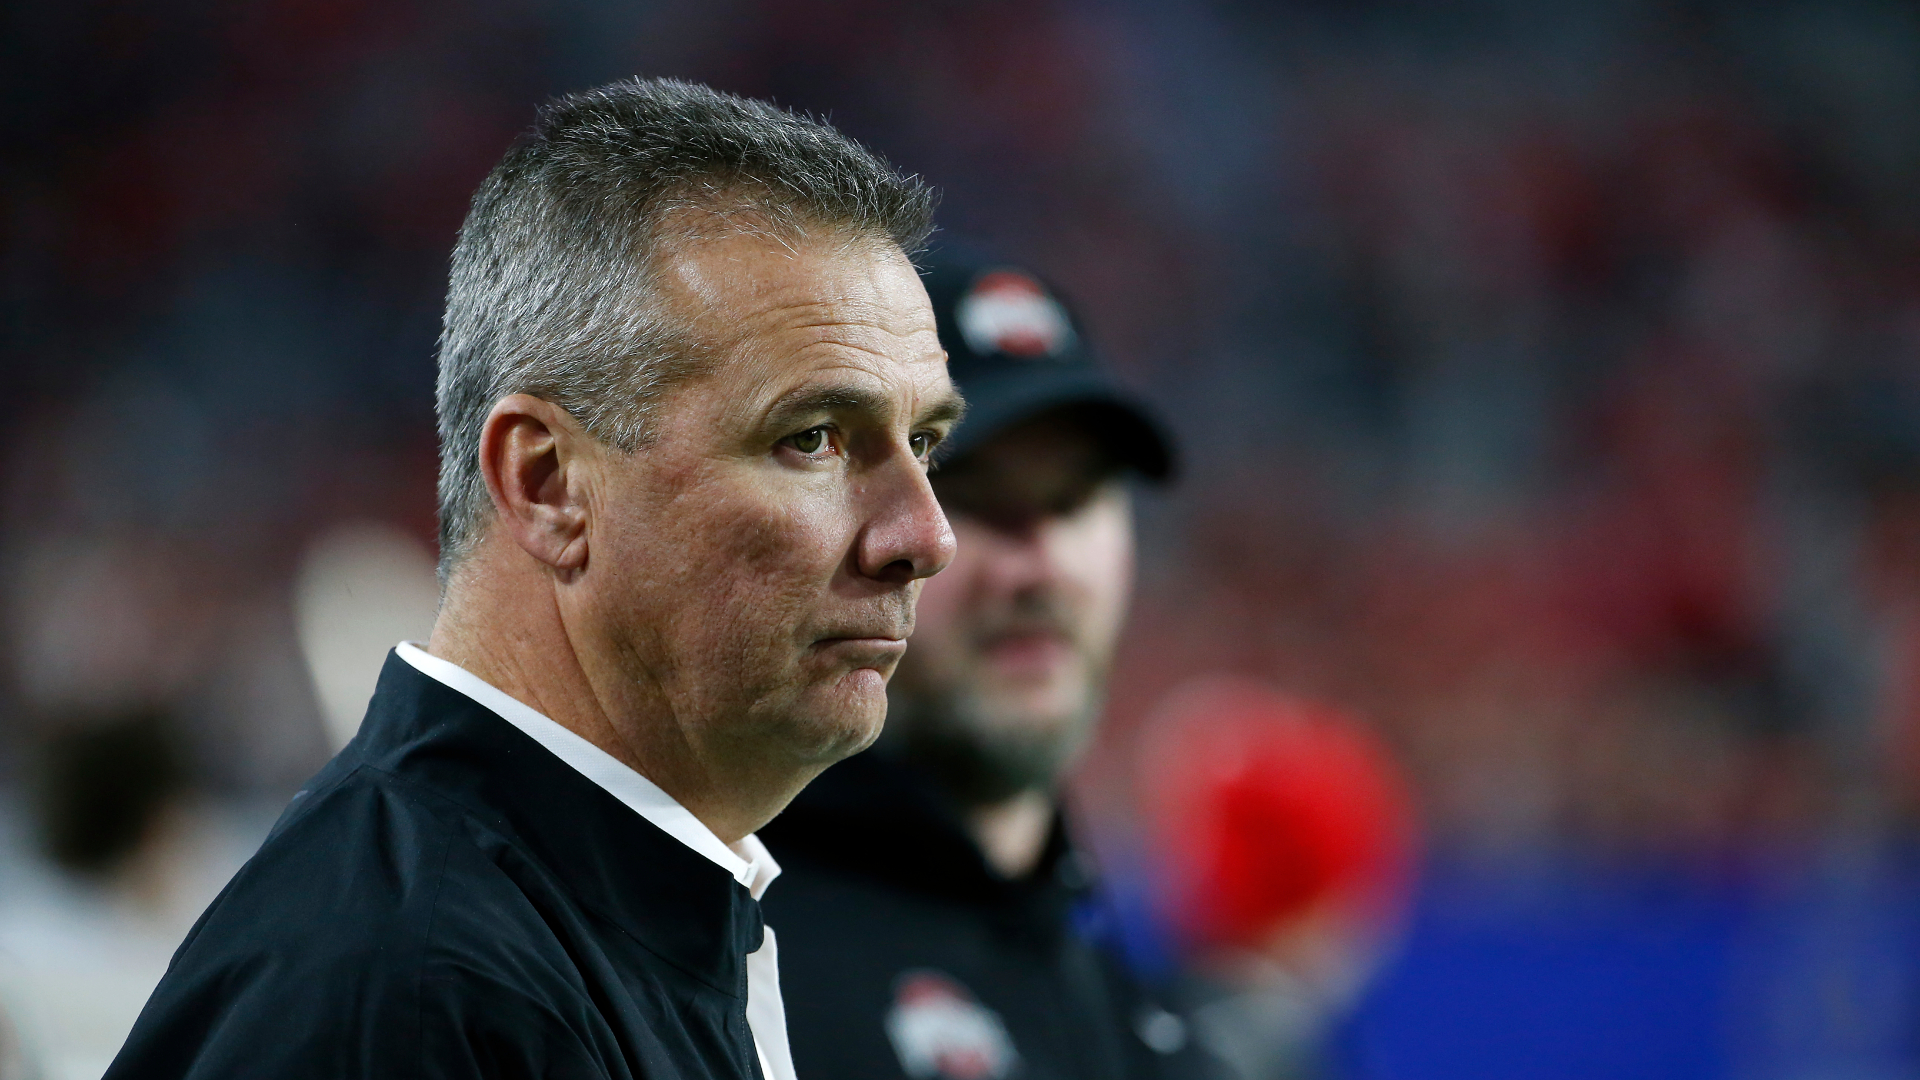 Jagaurs' Urban Meyer criticized for hiring Chris Doyle, who was accused of racism, bullying at Iowa